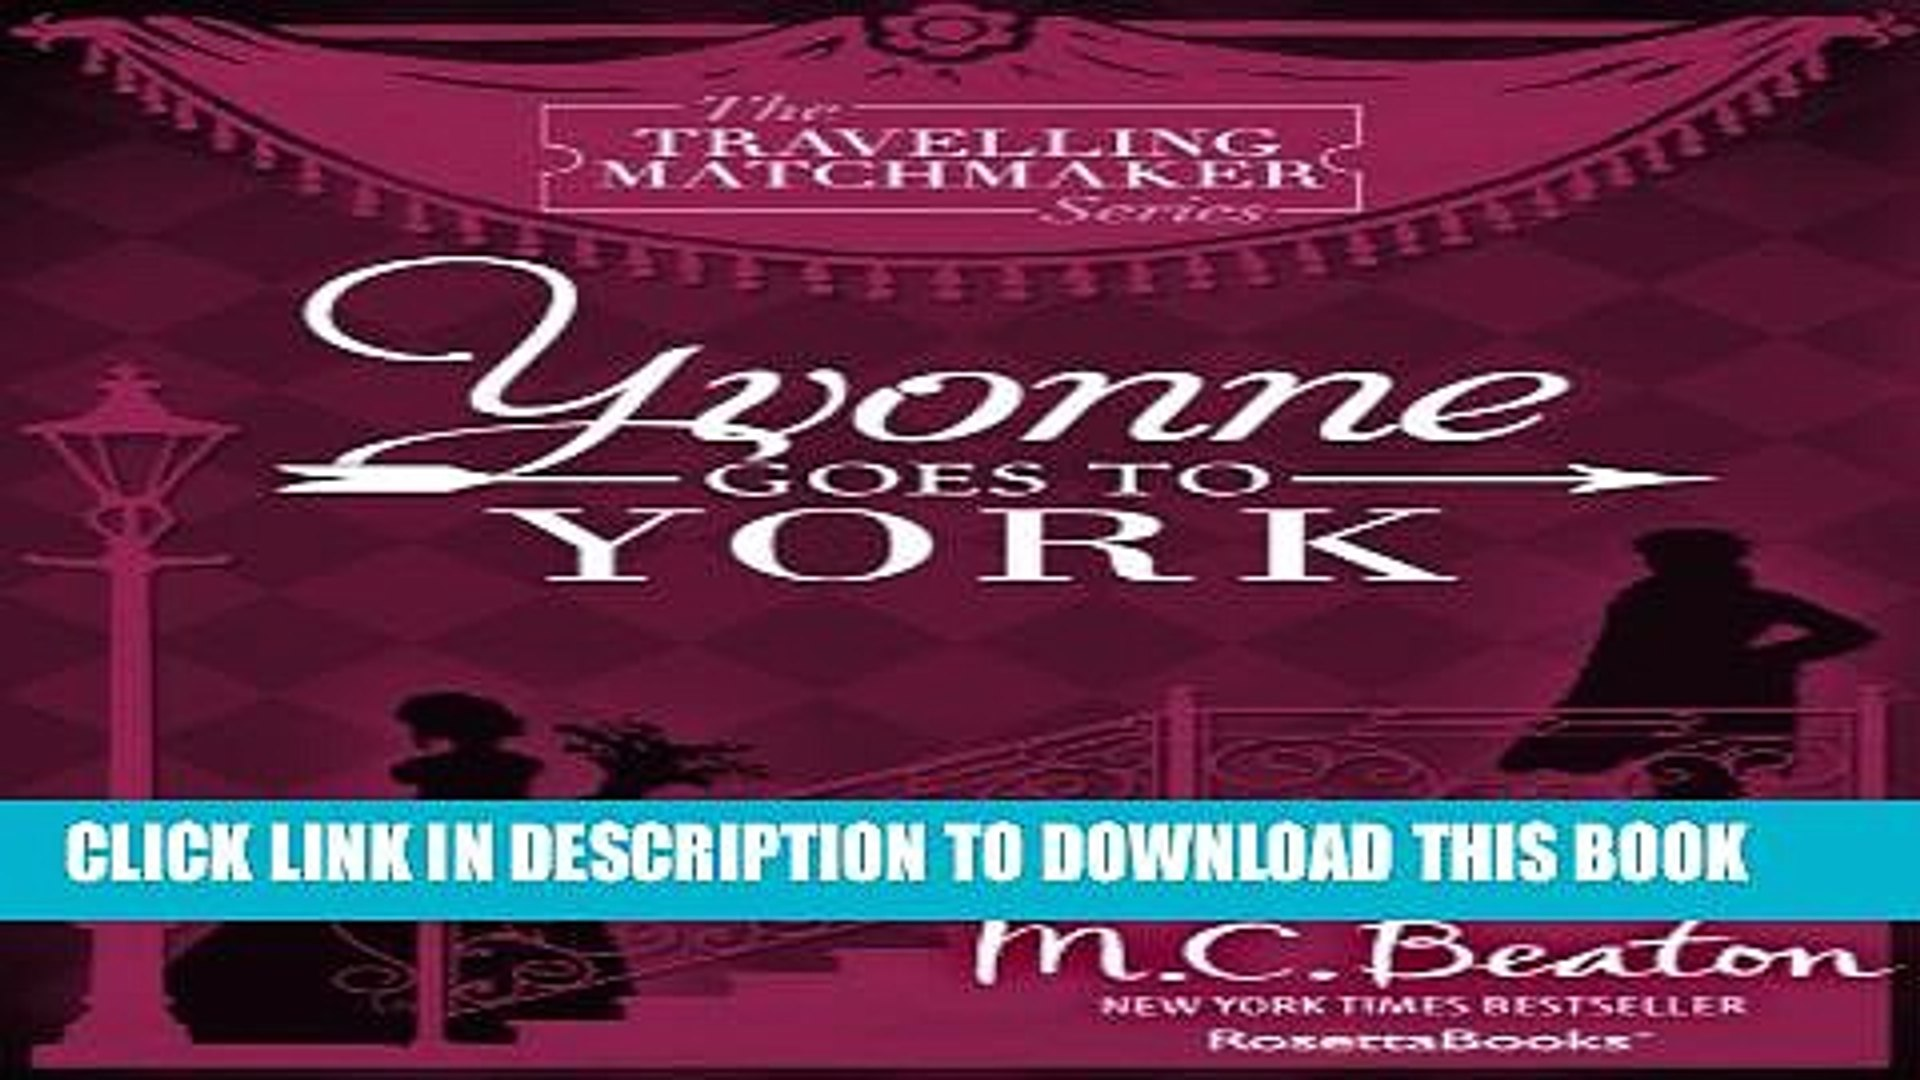 [PDF] Yvonne Goes To York (The Traveling Matchmaker series Book 6) Popular Online